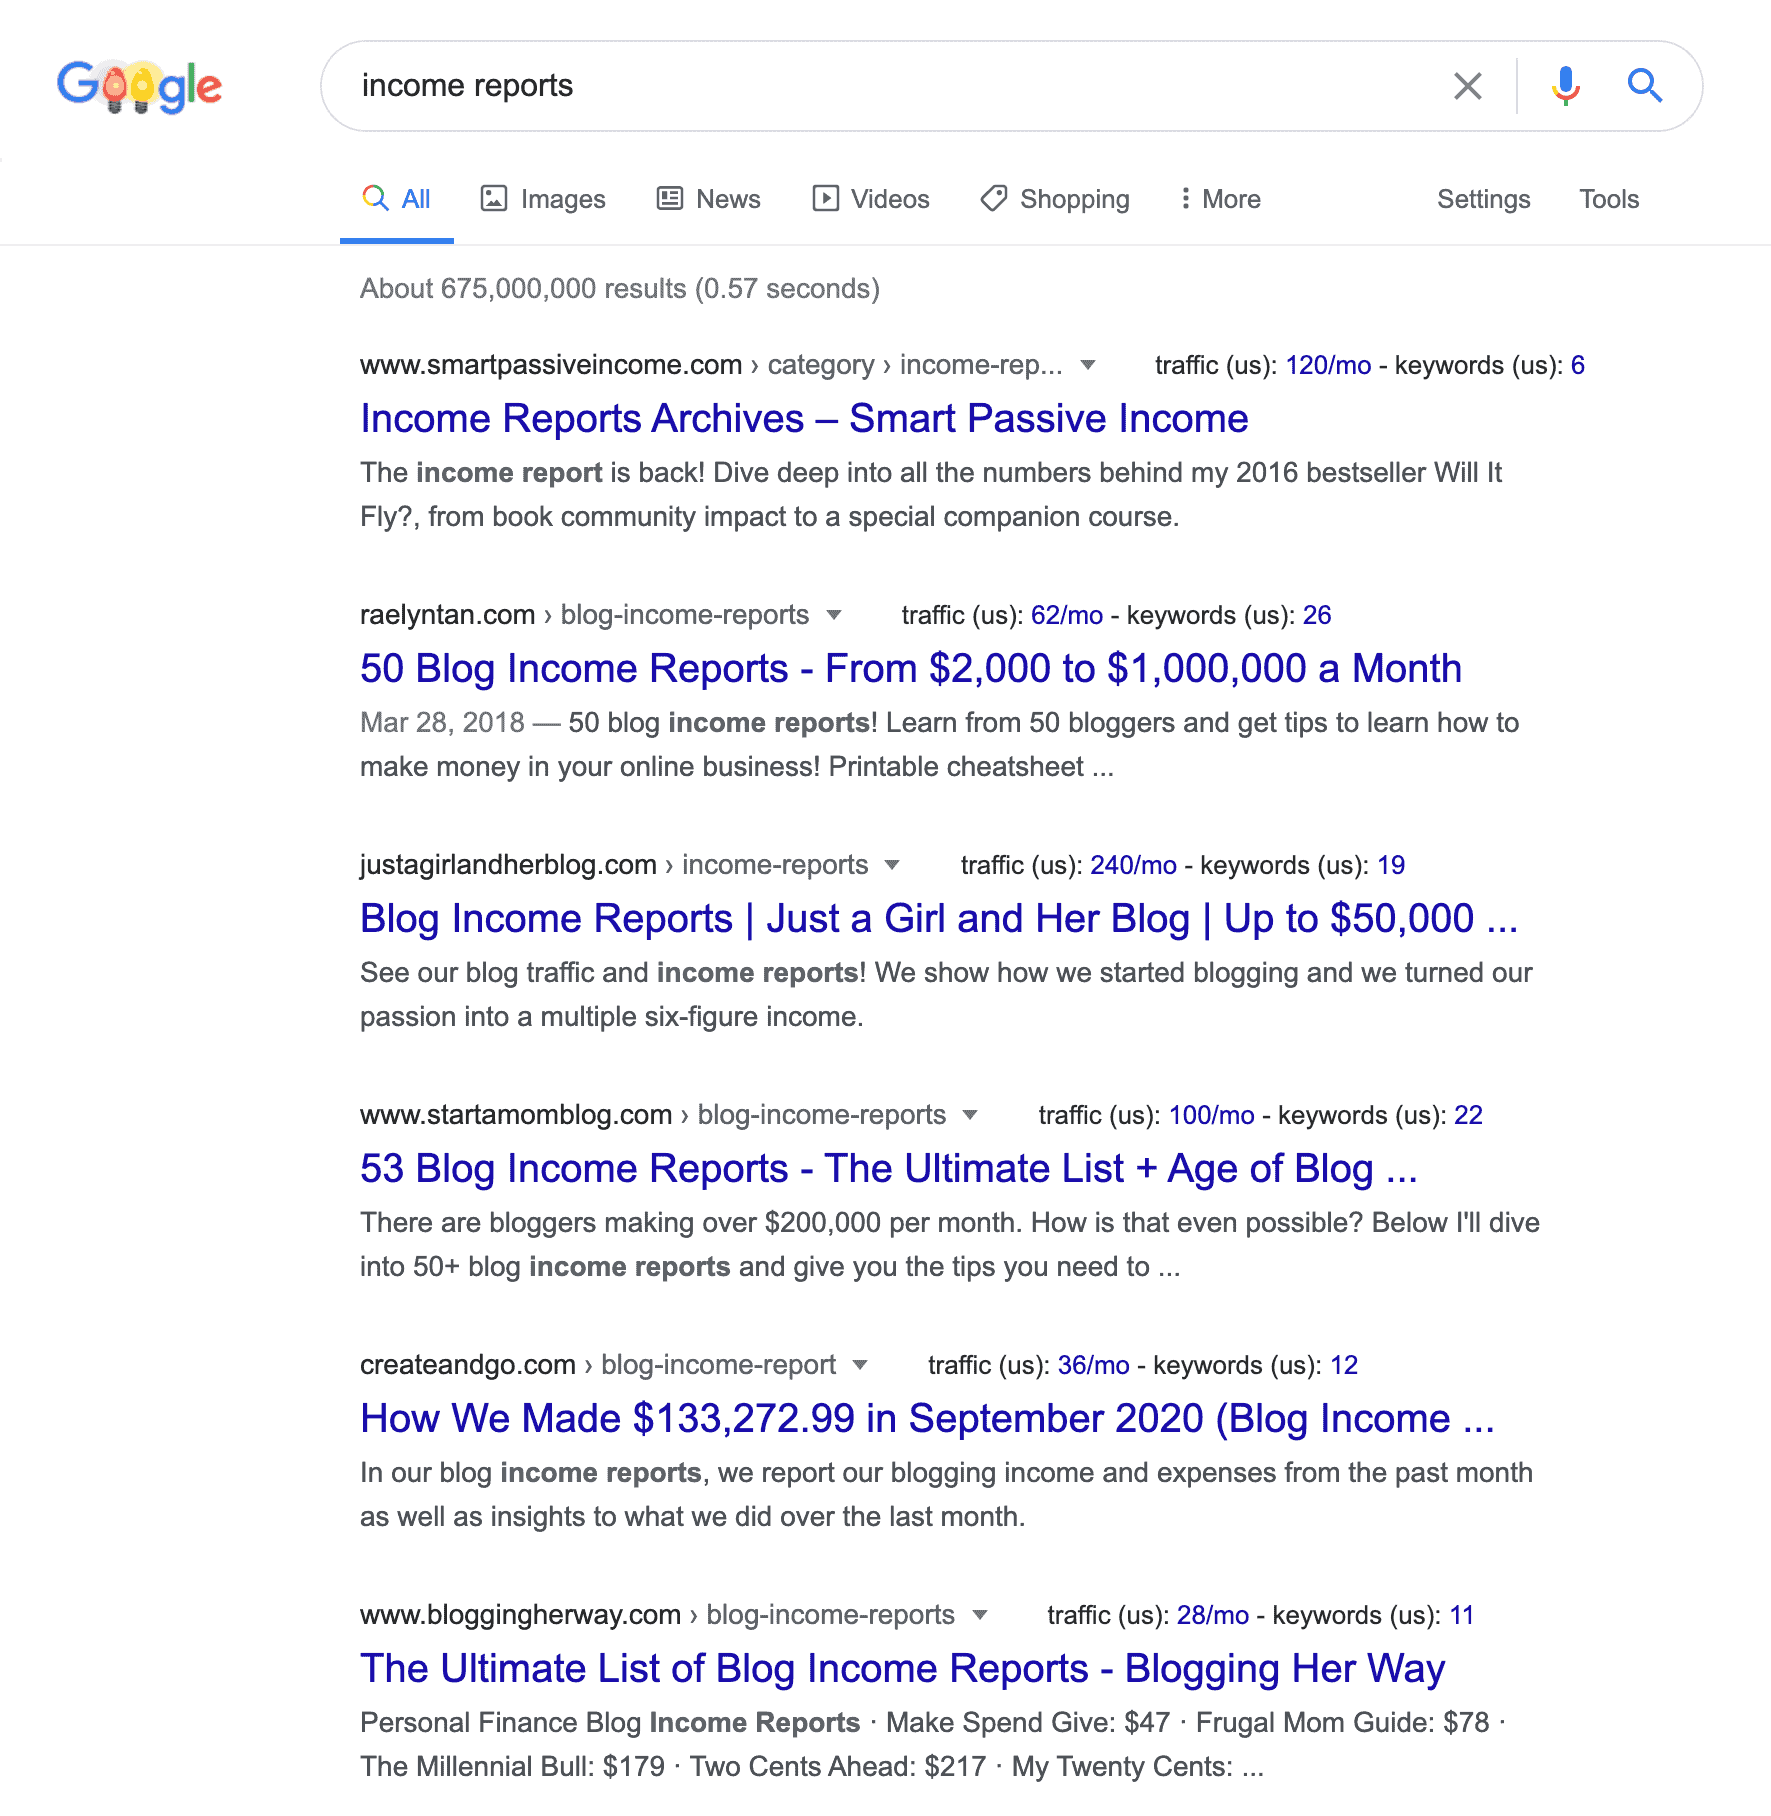 """Google search results for """"income reports"""""""